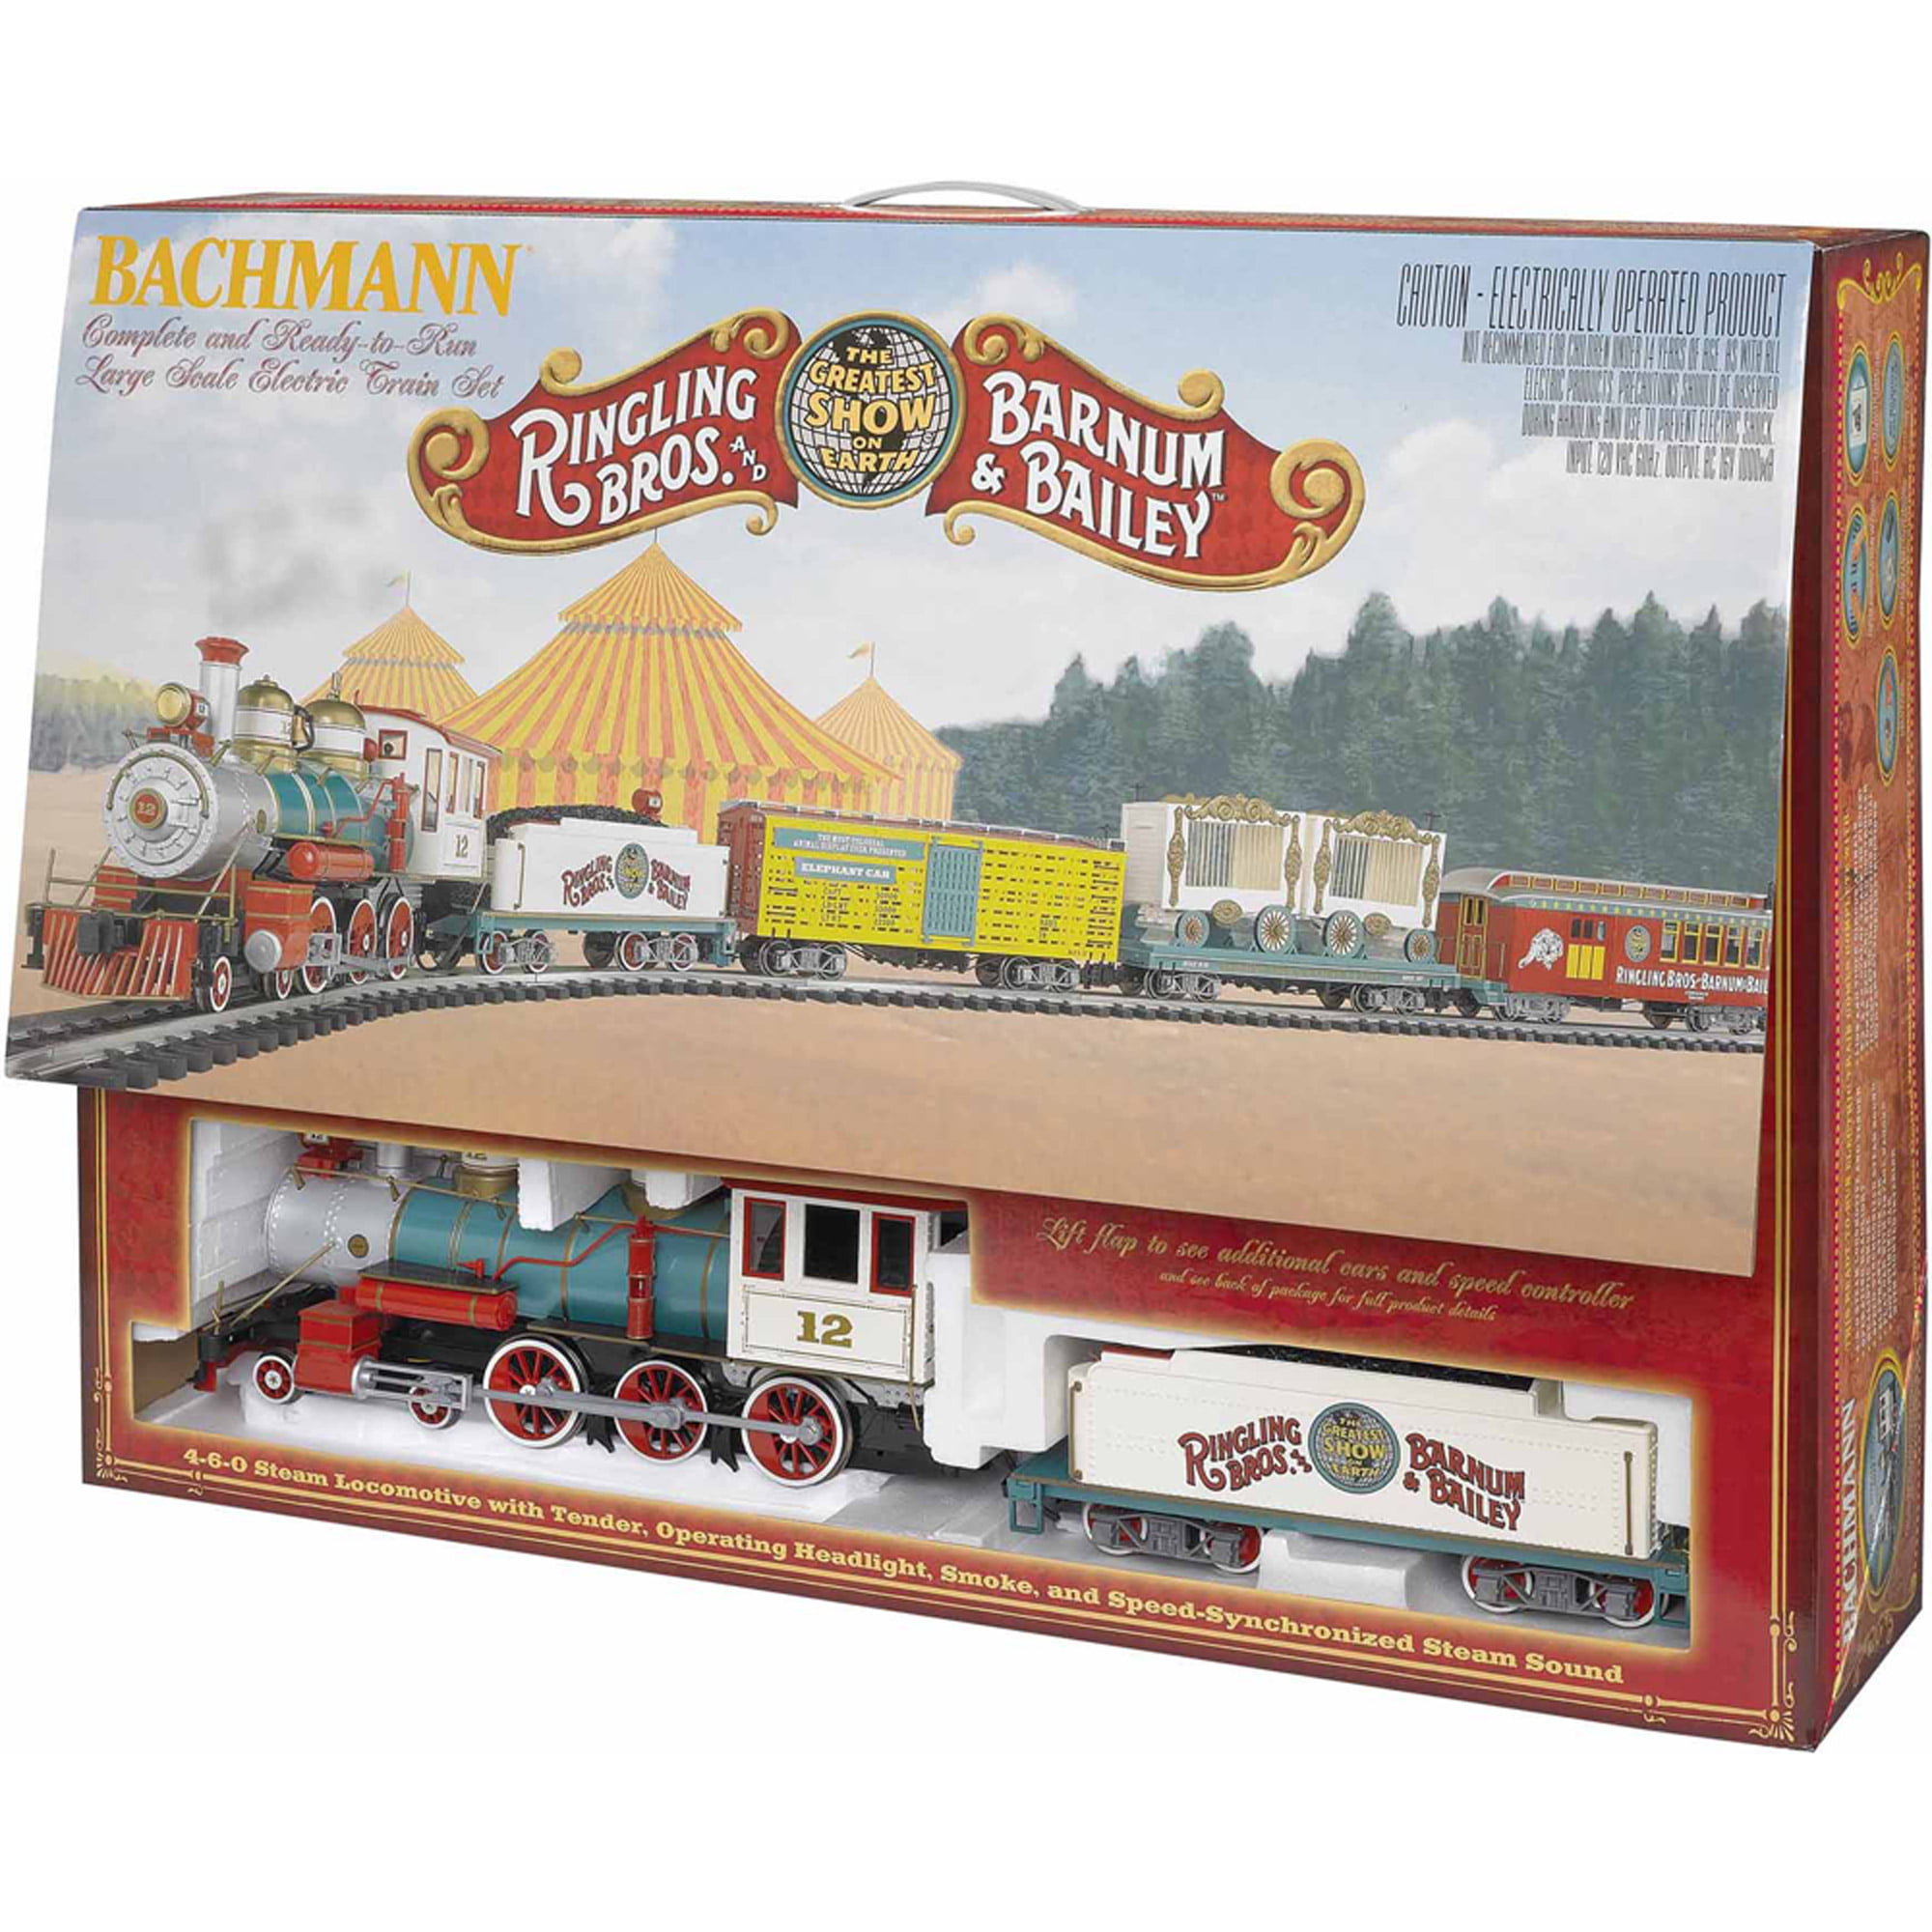 "Bachmann Trains Ringling Bros. And Barnum and Bailey , Large ""G"" Scale Ready-to-Run Electric Train... by Bachmann"